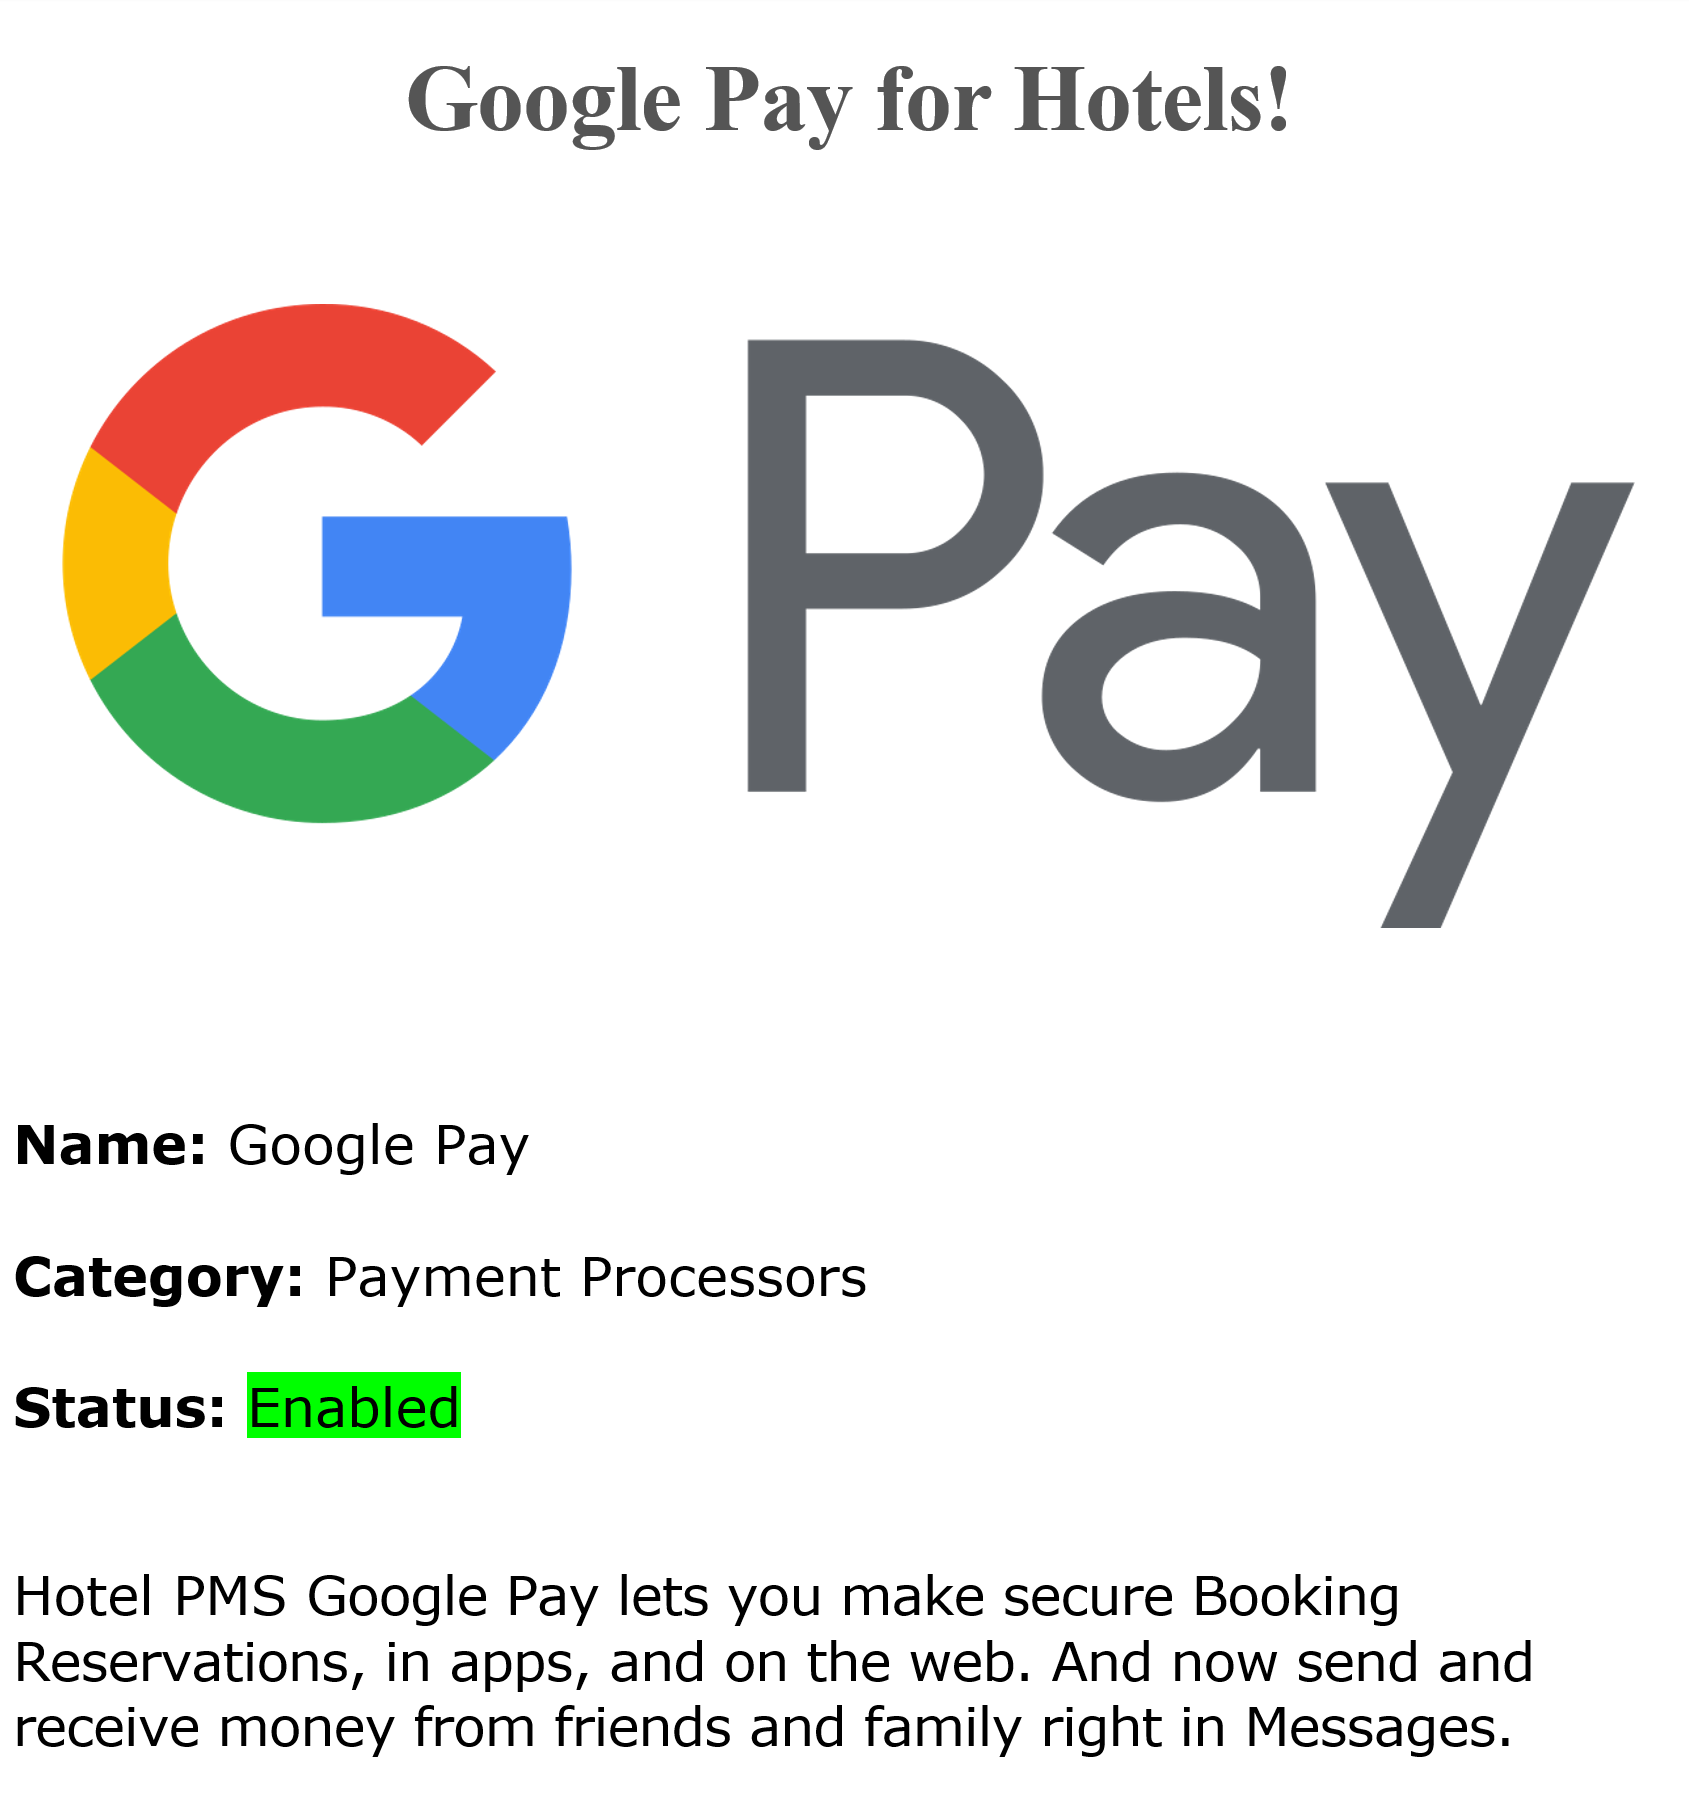 Google Pay Credit Cards Payments Processing   Android Google Pay Credit Cards Payments Processing for hotels and b&b